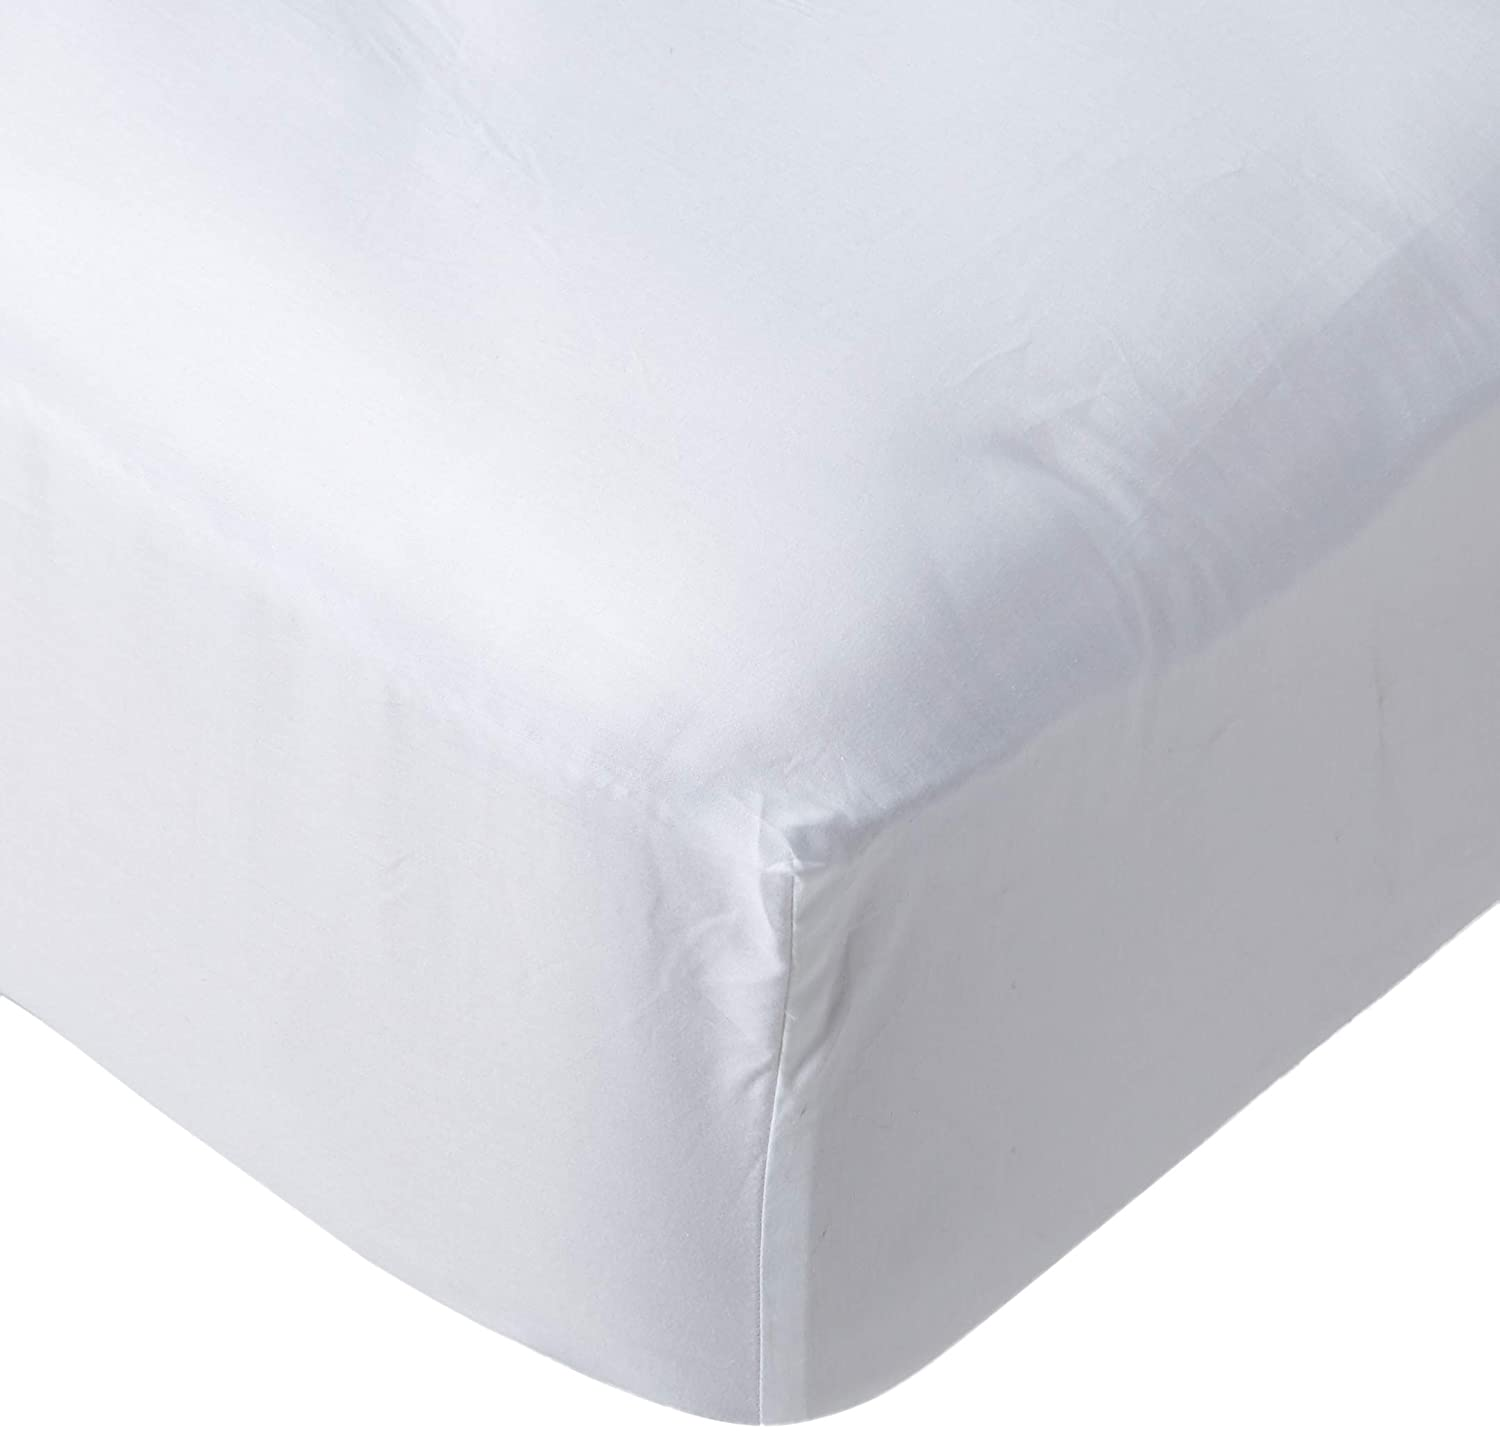 Plushy Comfort White Queen Fitted Sheet in 100 Percent Egyptian Cotton, 1000 Thread Count, 21 Inch Deep Pocket FBA_COMIN18JU020796